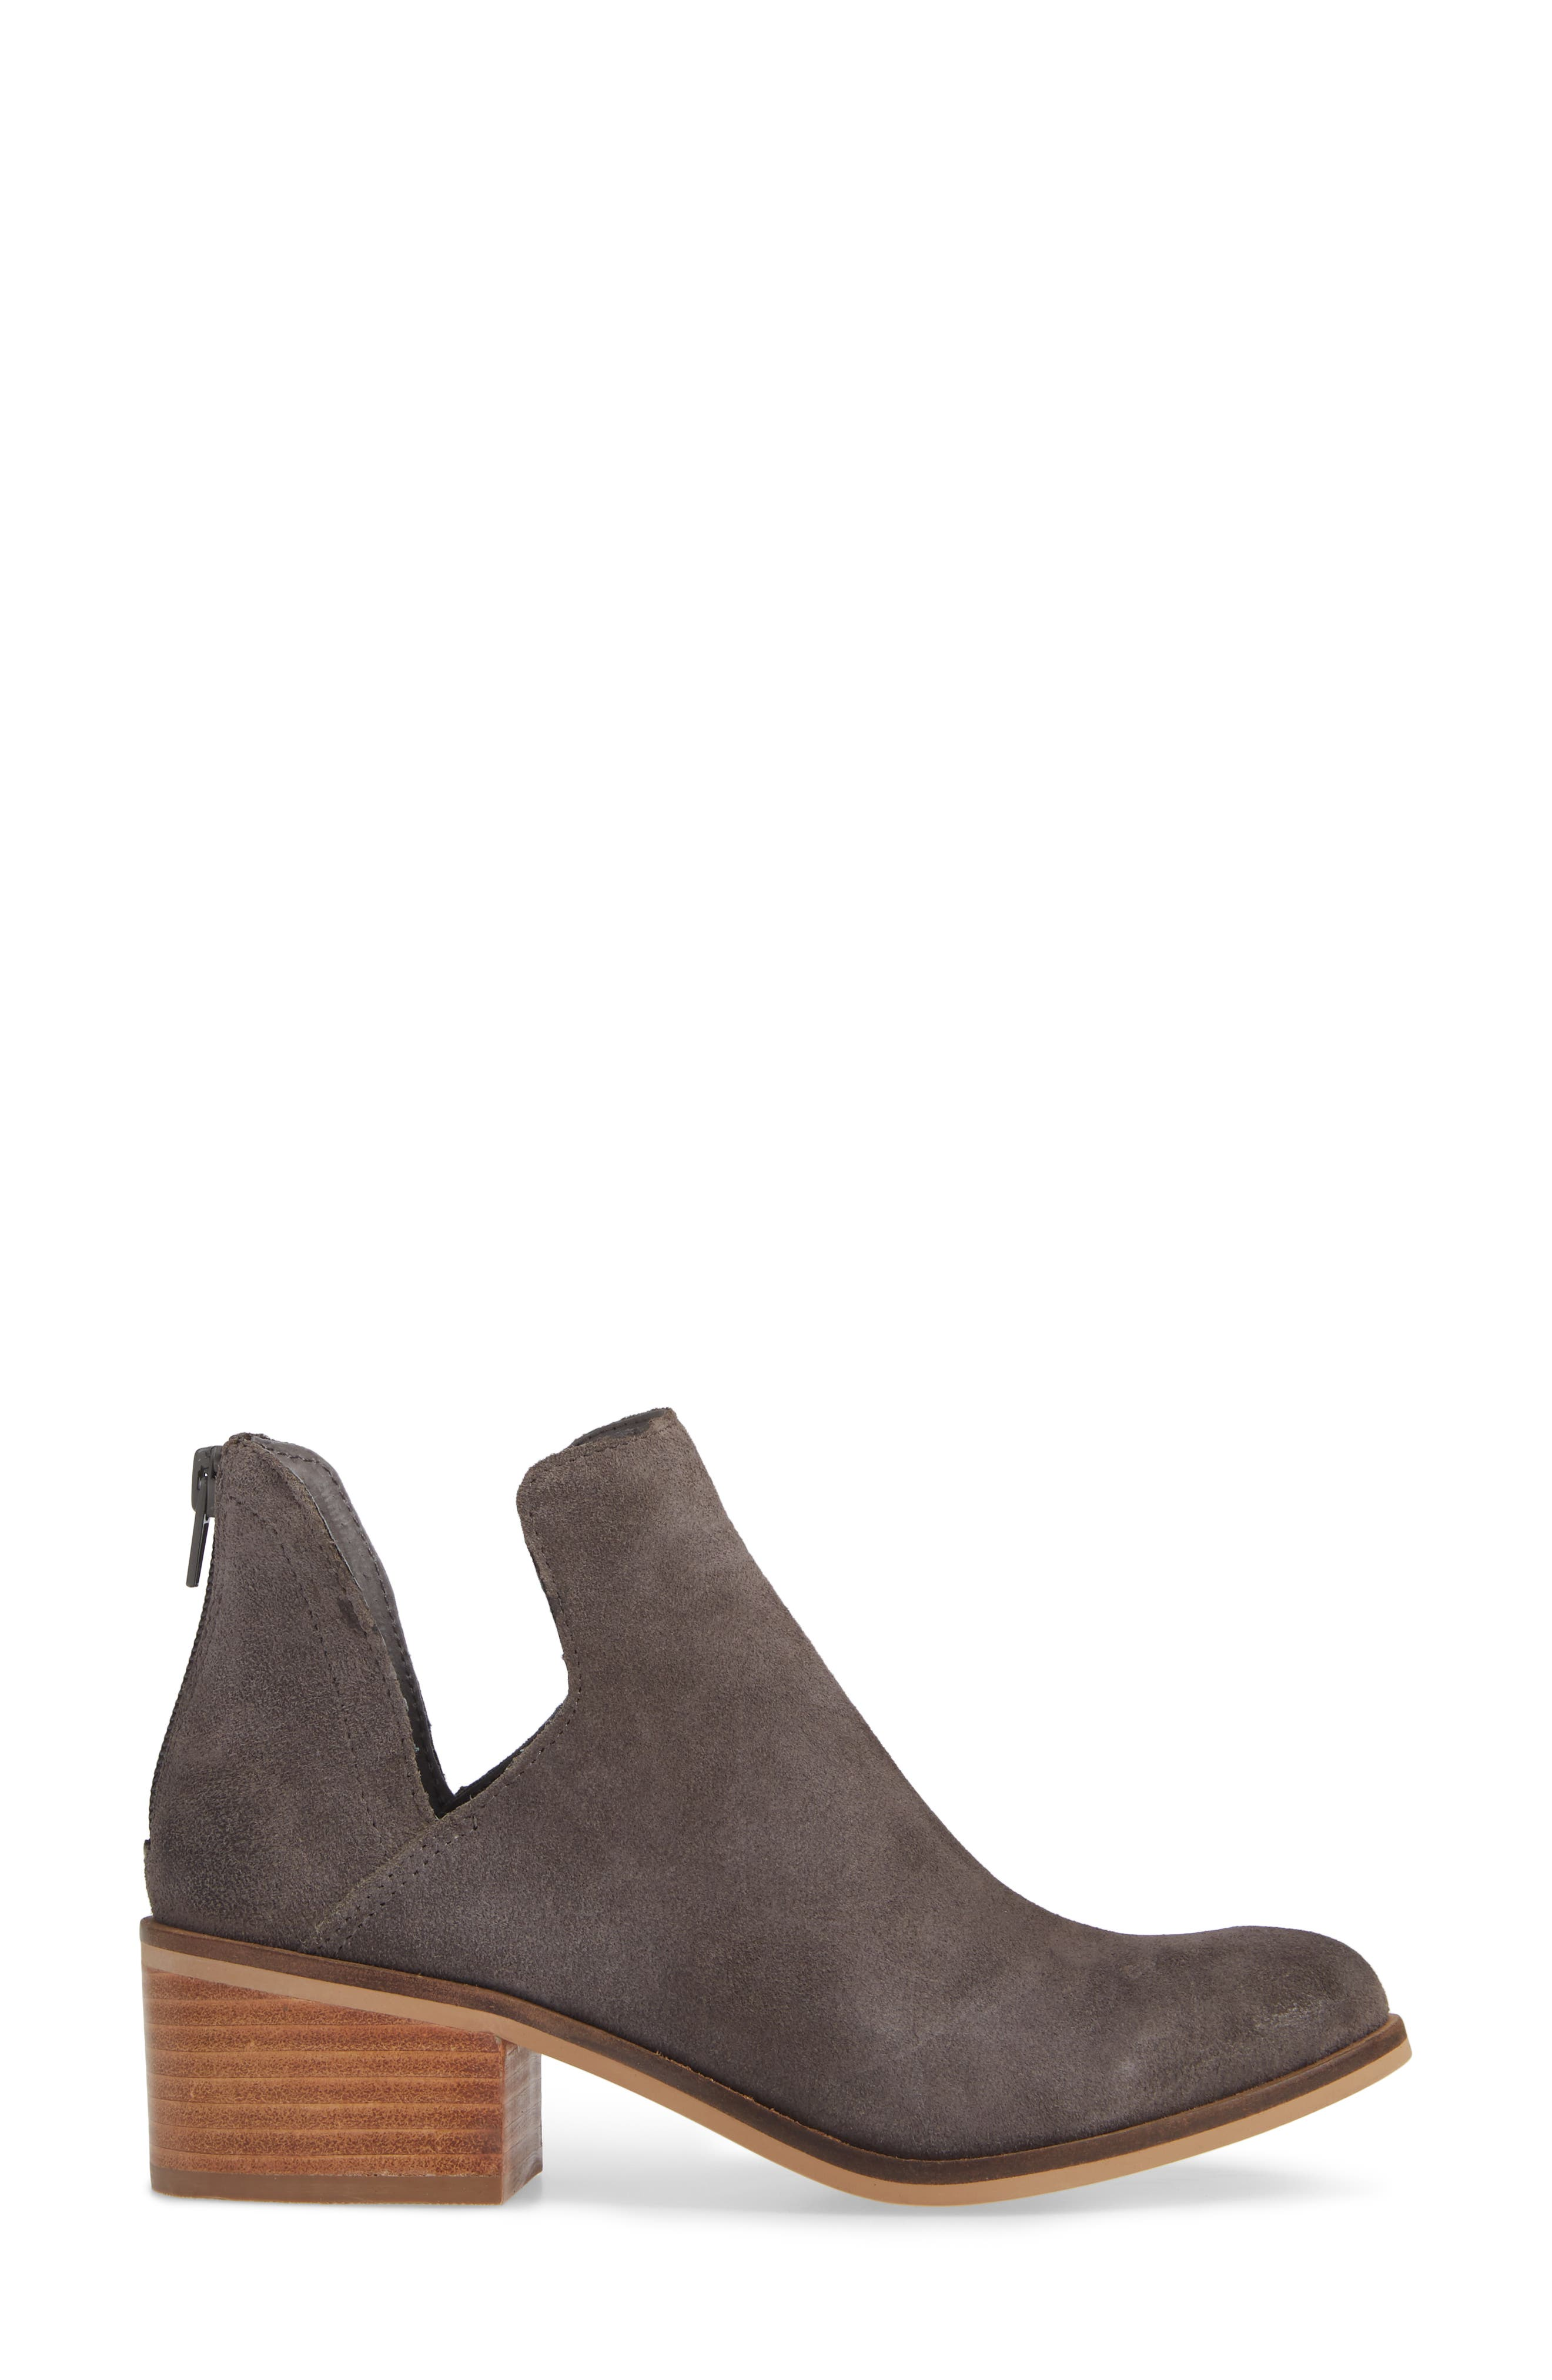 Lancaster Bootie,                             Alternate thumbnail 3, color,                             GREY SUEDE